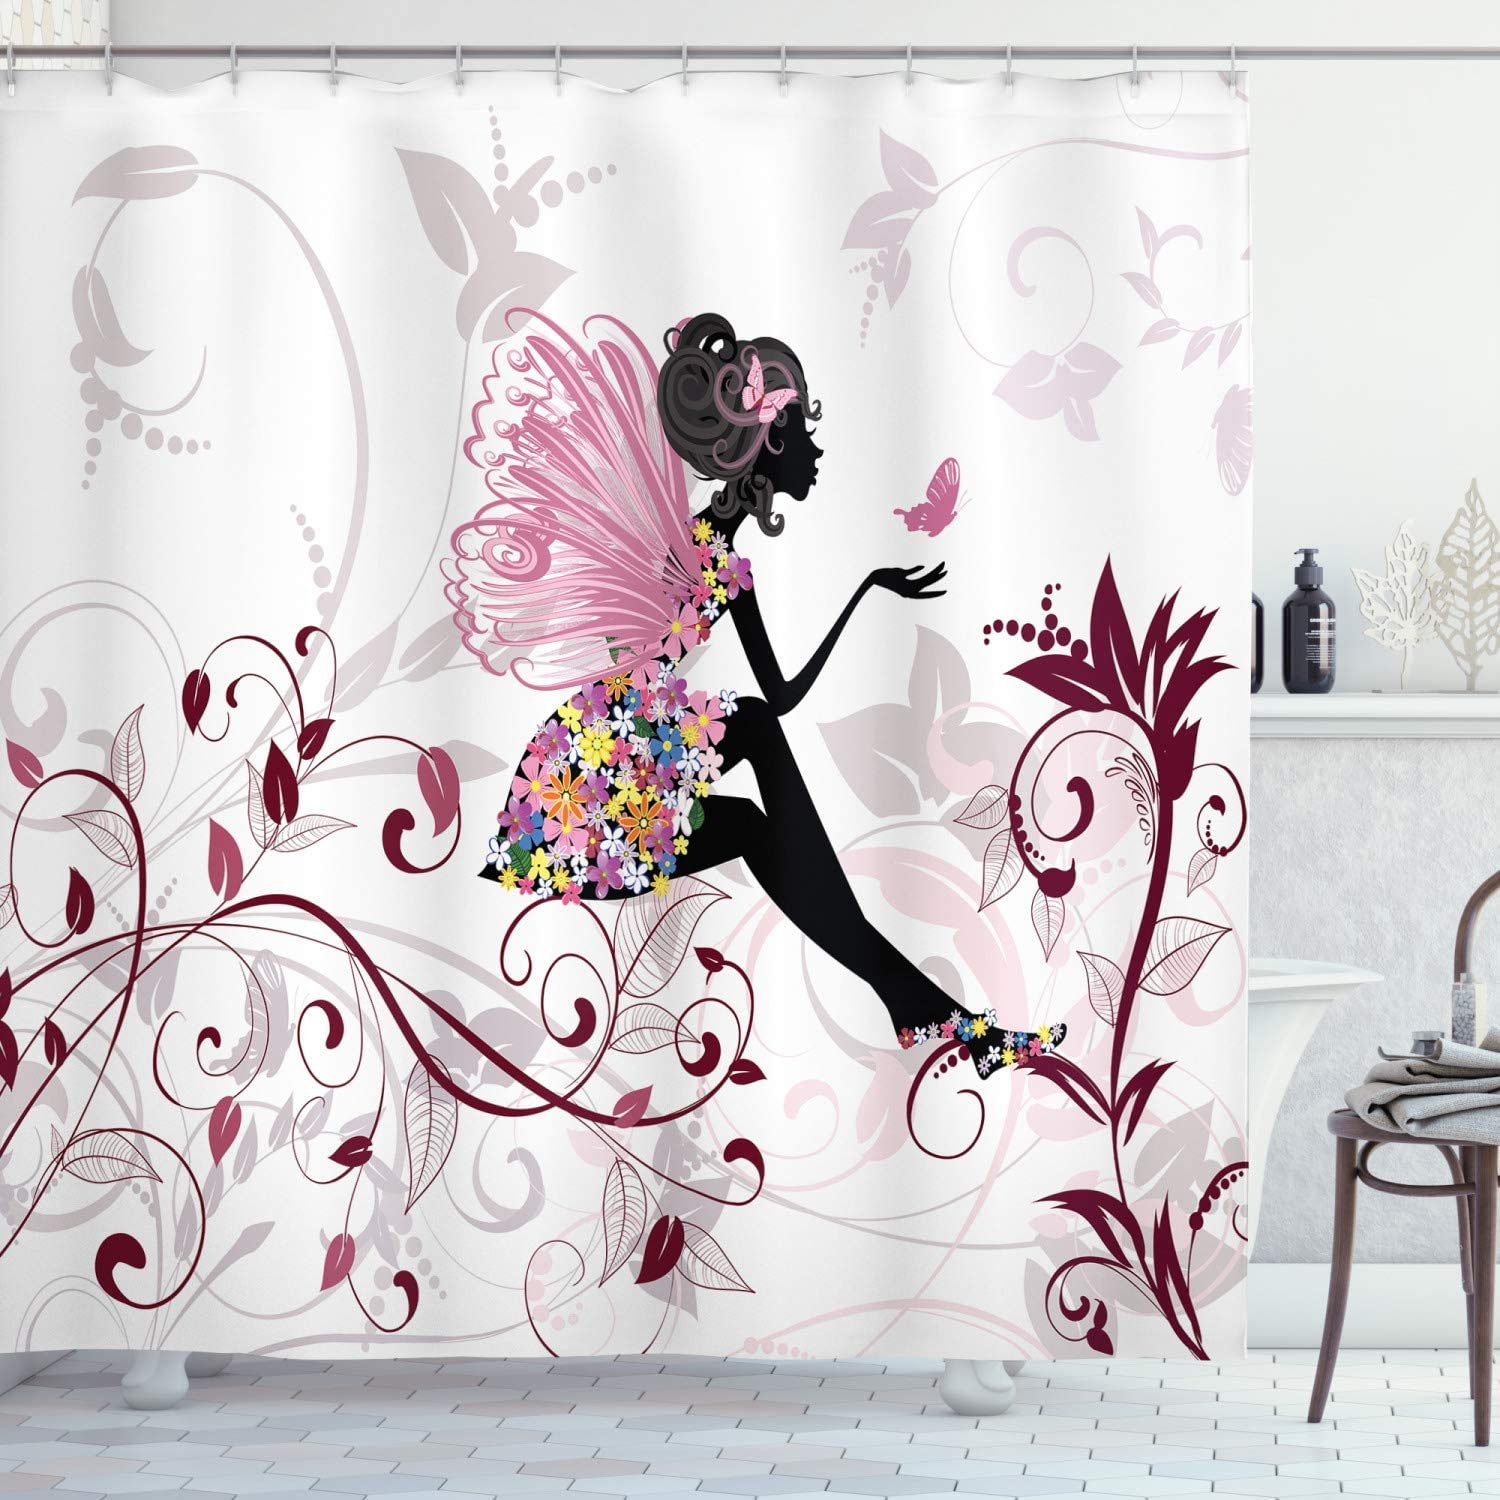 """Ambesonne Princess Shower Curtain, Flower Fairy with Butterflies Wings Branches Ornaments Floral Spring Forest, Cloth Fabric Bathroom Decor Set with Hooks, 70"""" Long, Pink White"""